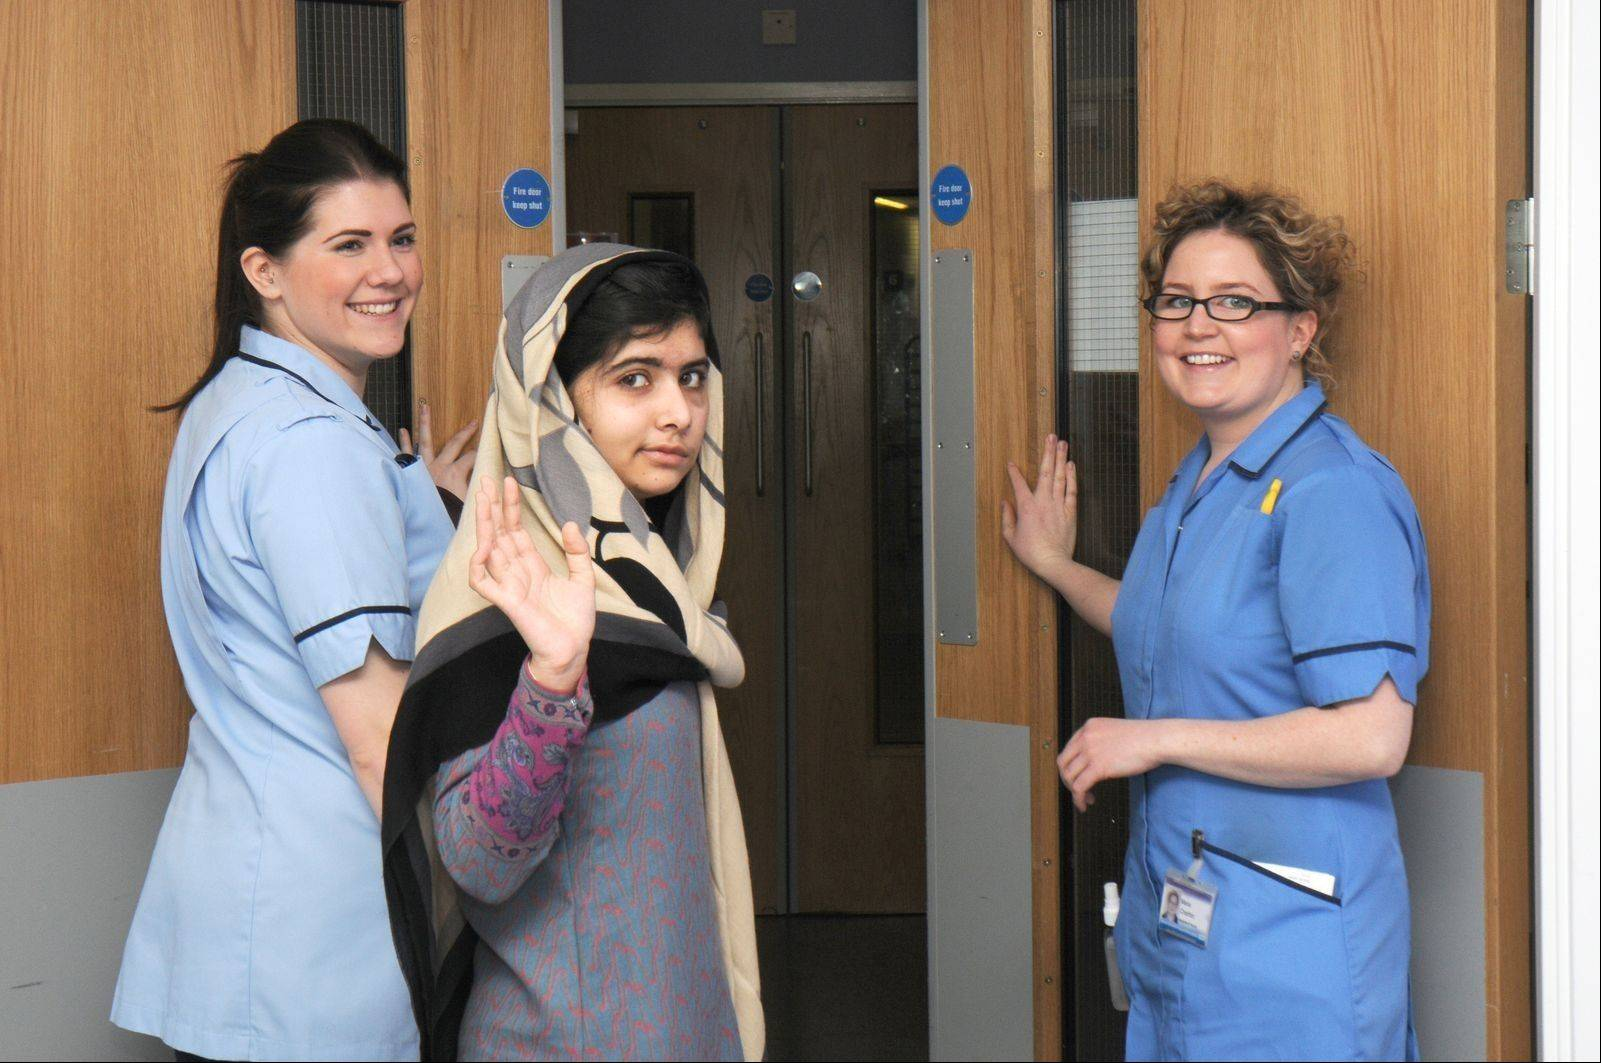 This photo, made available by Queen Elizabeth Hospital, Birmingham, England shows Malala Yousufzai saying goodbye as she is discharged from the hospital Friday to continue her rehabilitation at her family's temporary home in the area.